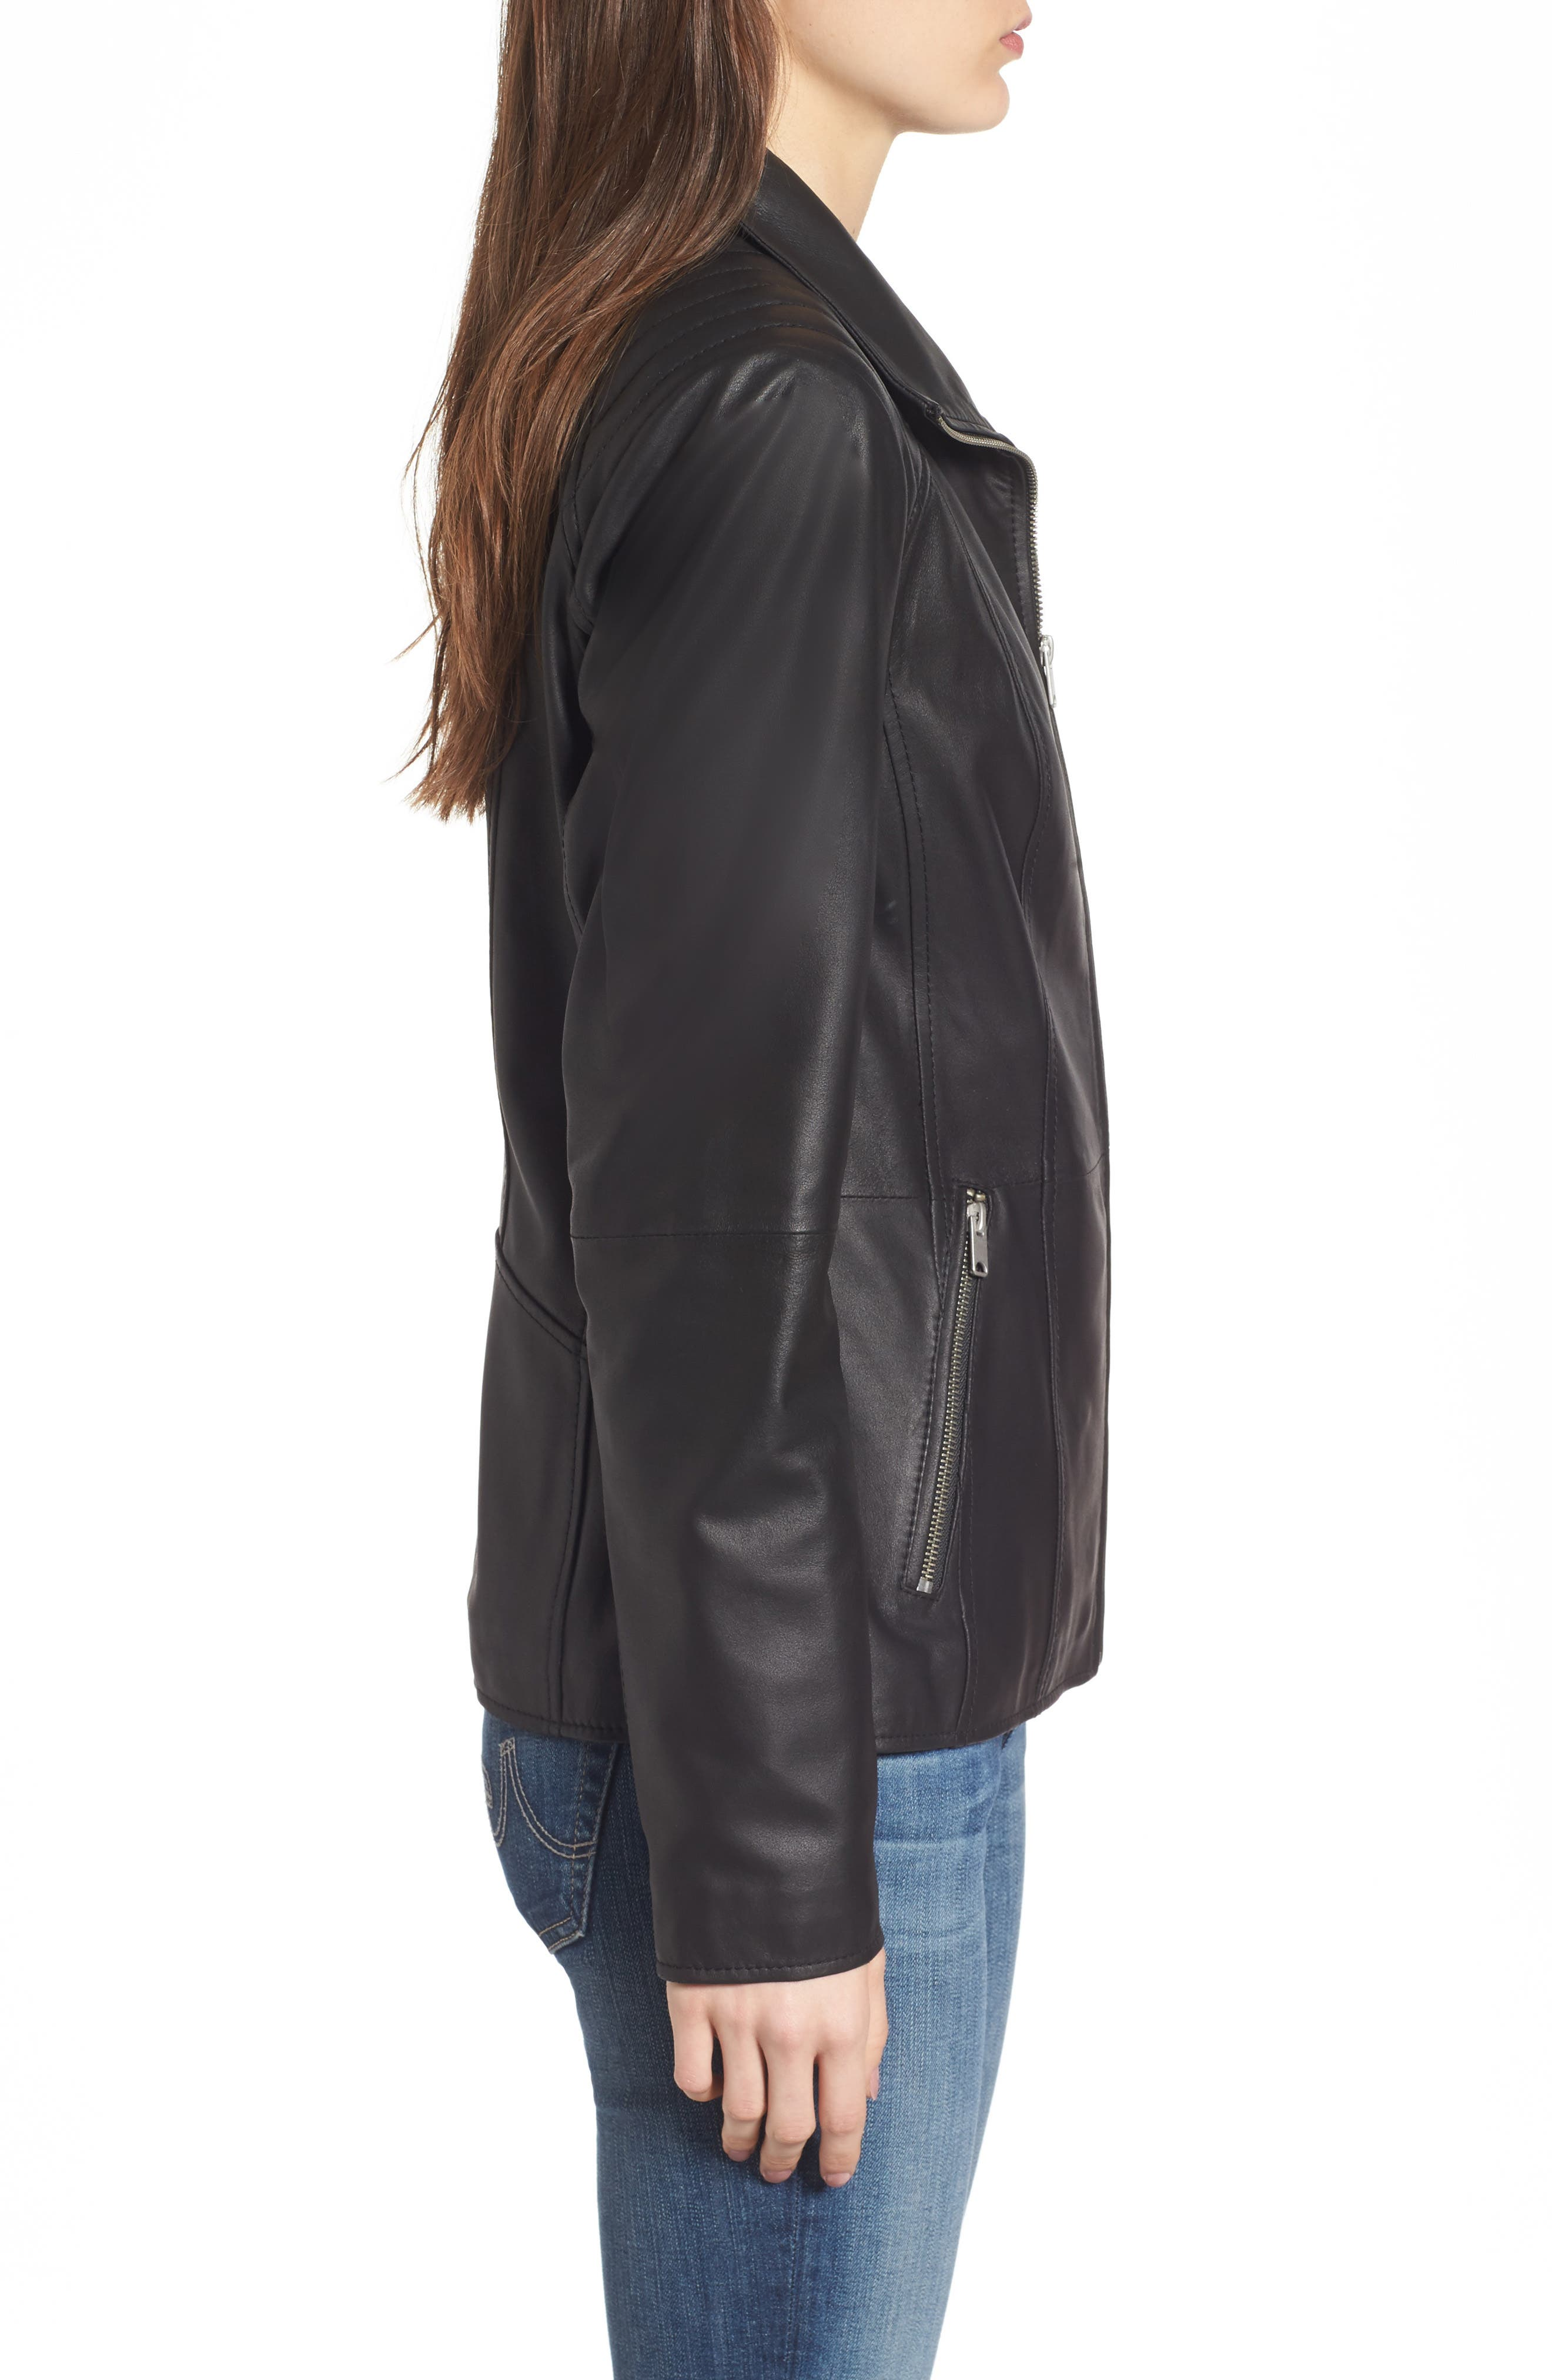 Fabian Feather Leather Jacket,                             Alternate thumbnail 3, color,                             Black